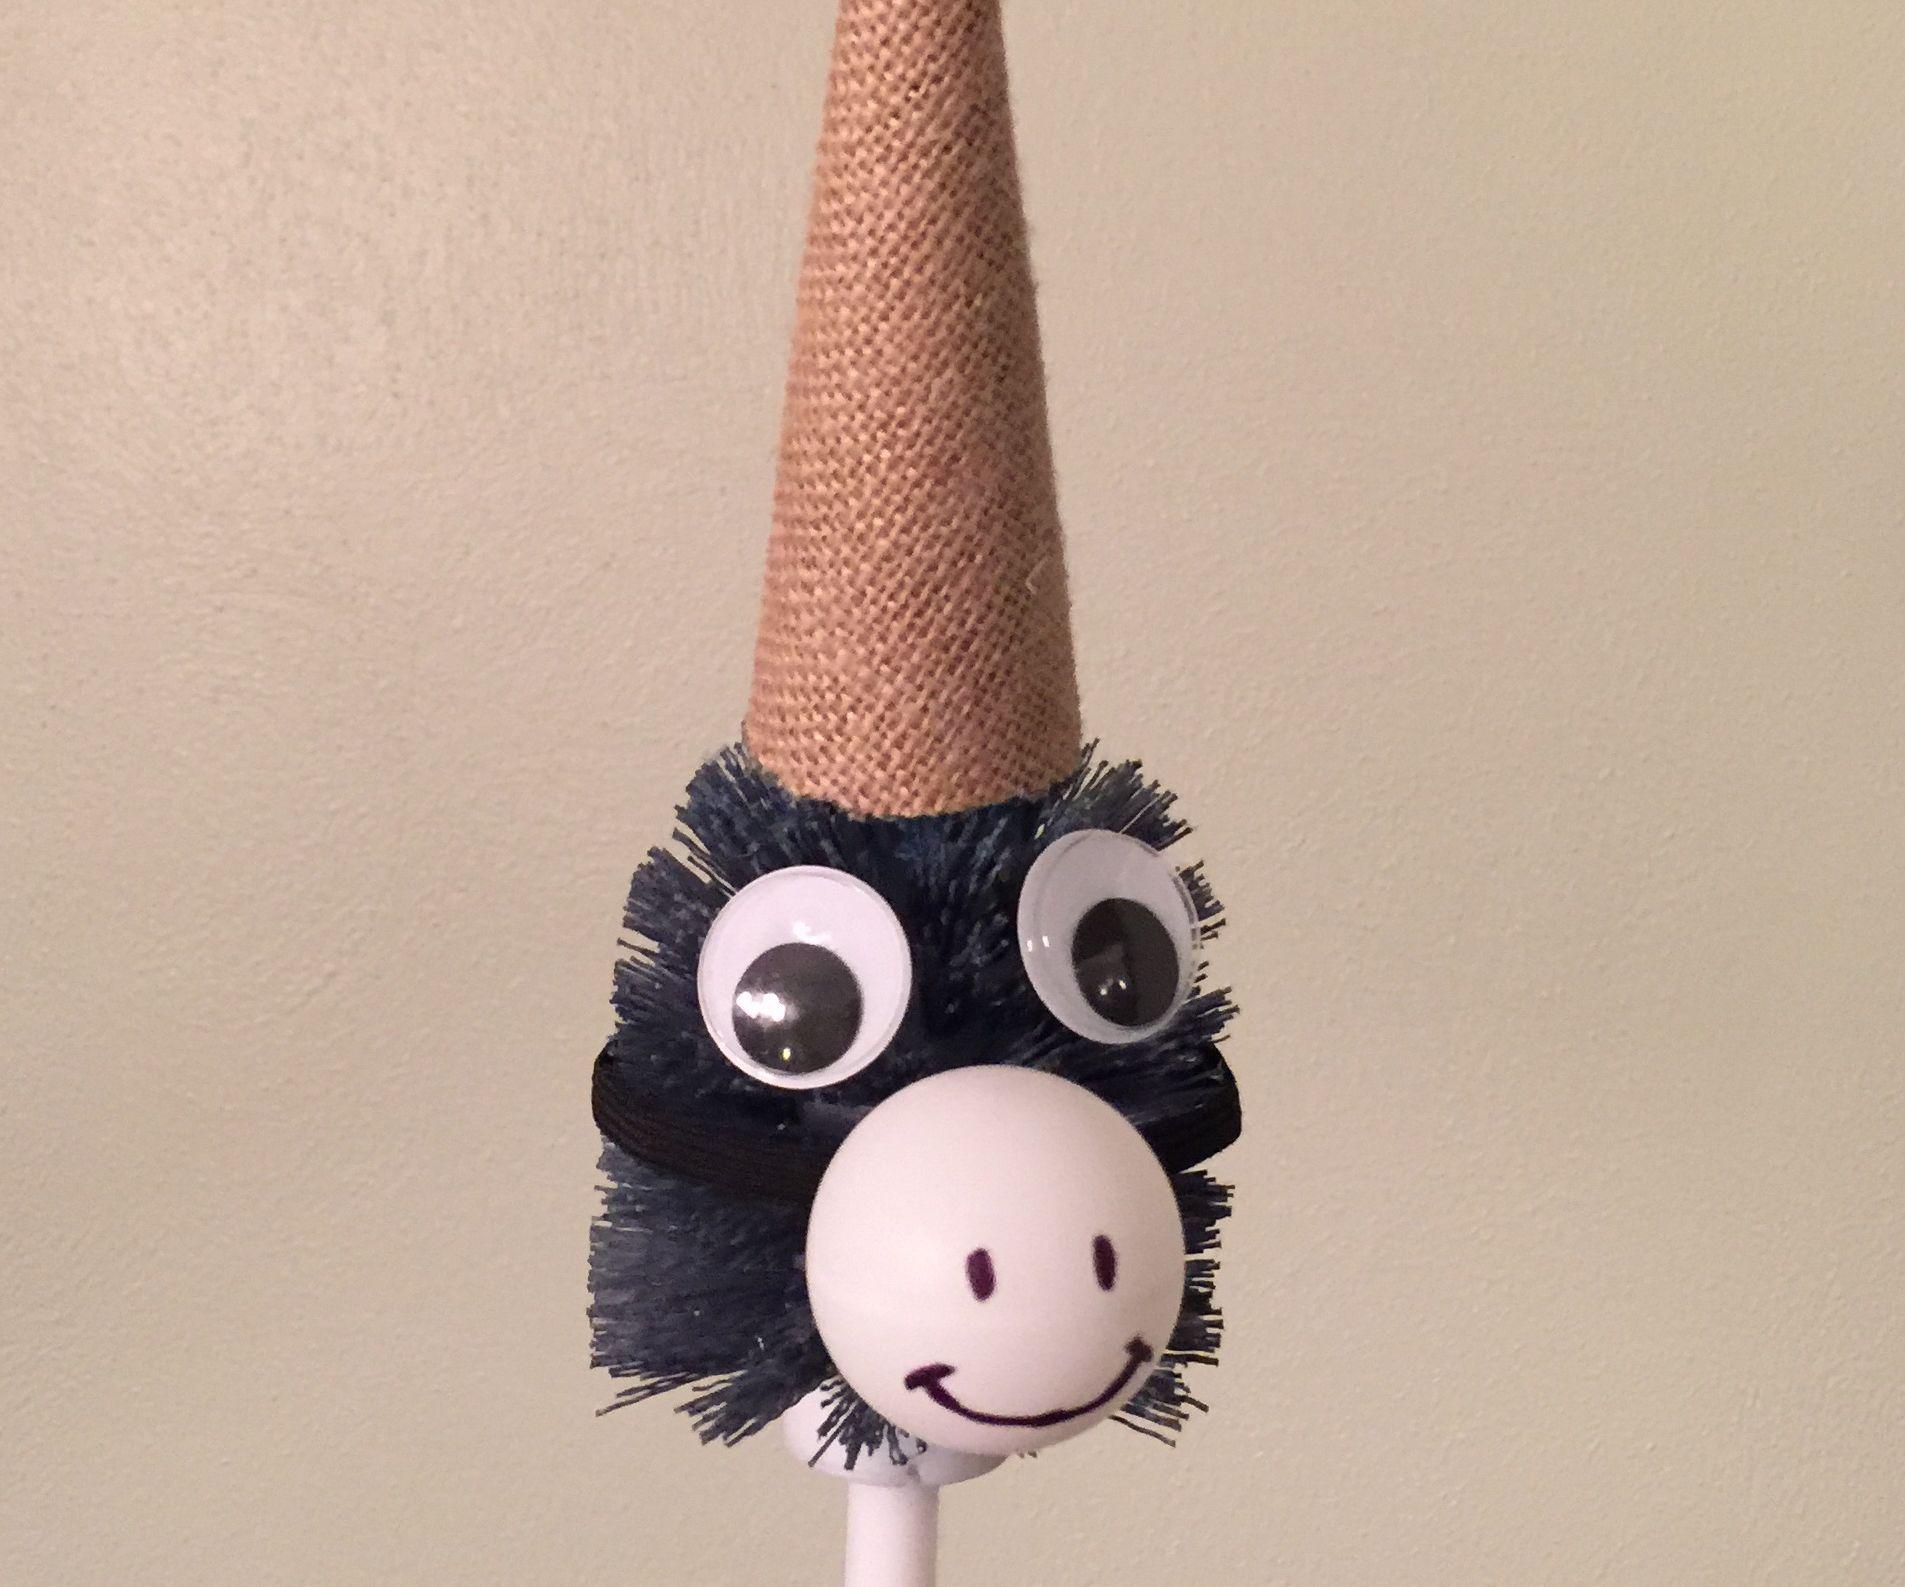 Papoy! Minion Unicorn Toy from Despicable Me